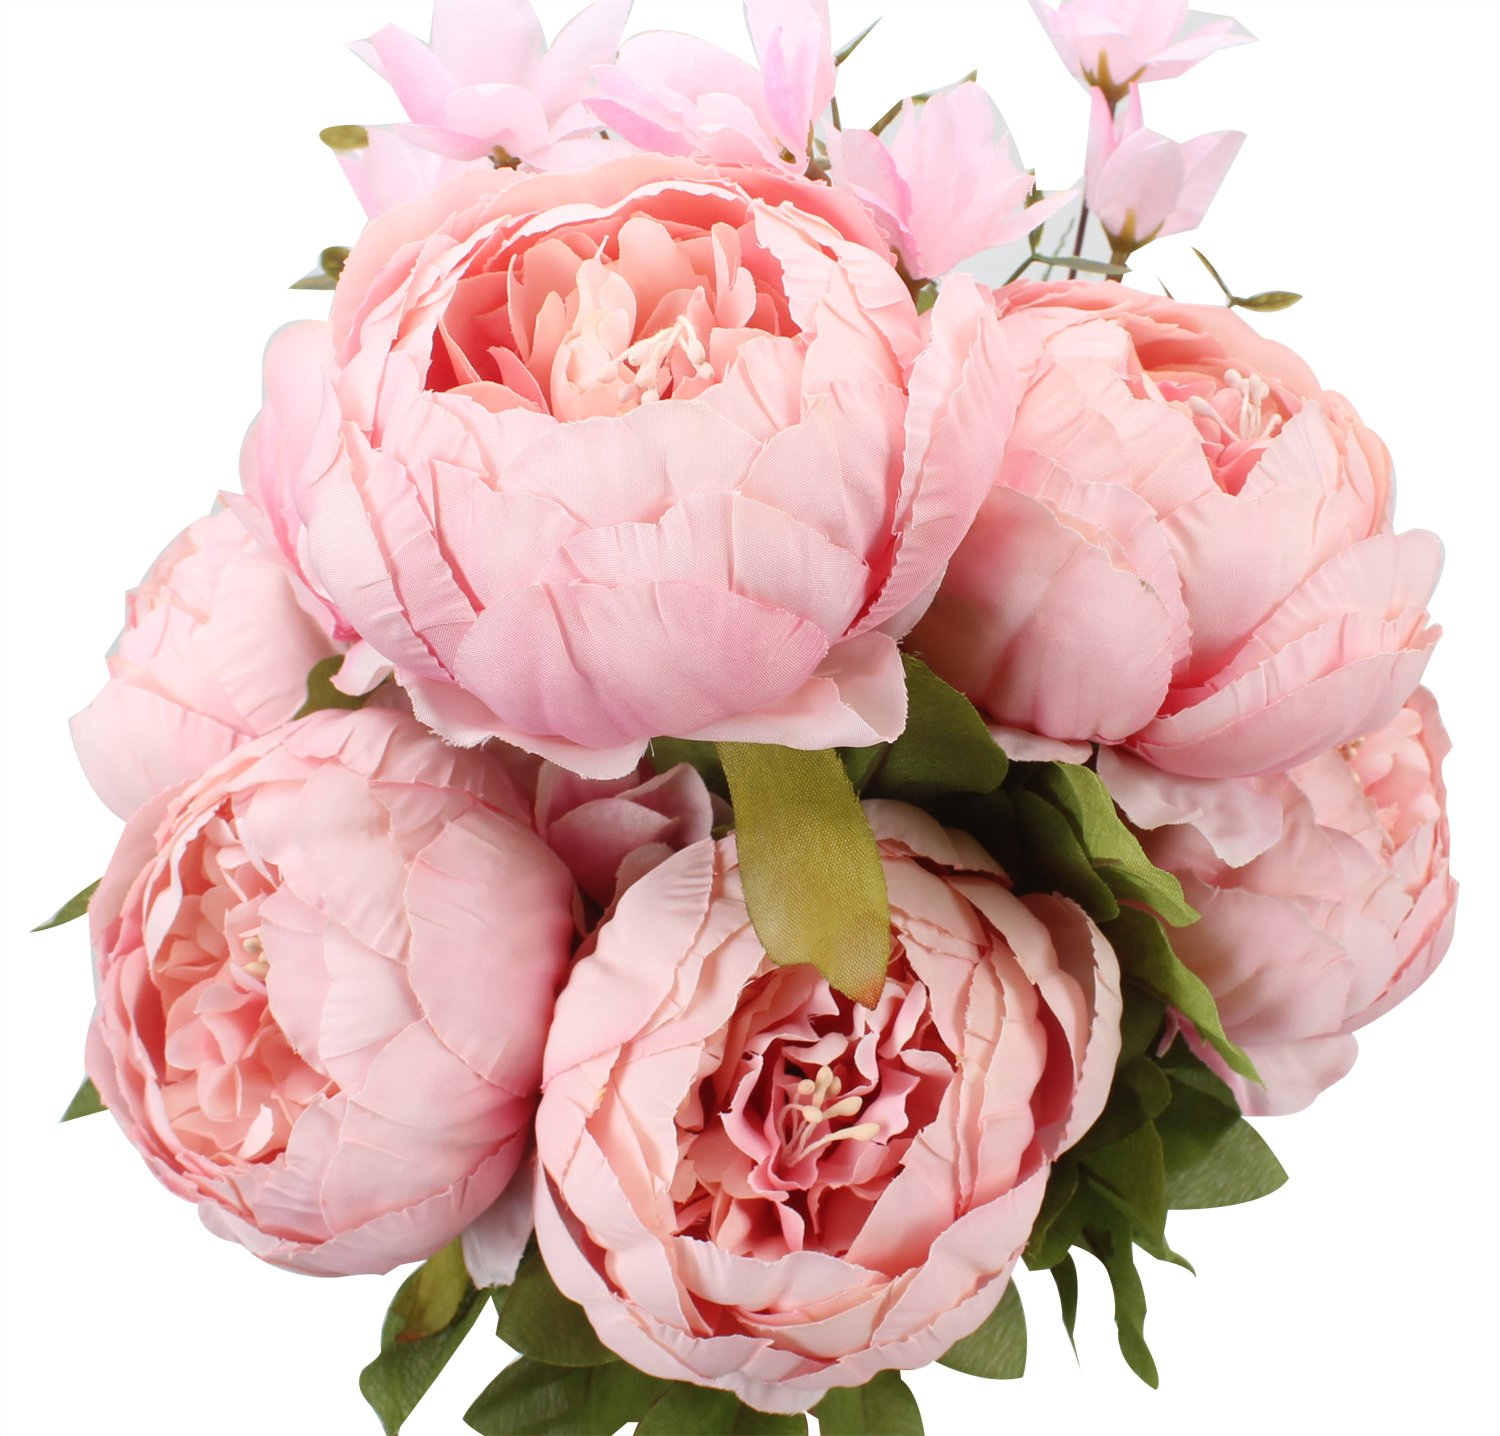 Duovlo Springs Flowers Artificial Silk Peony bouquets Wedding Home Decoration,Pack of 1 (Spring Light Pink)